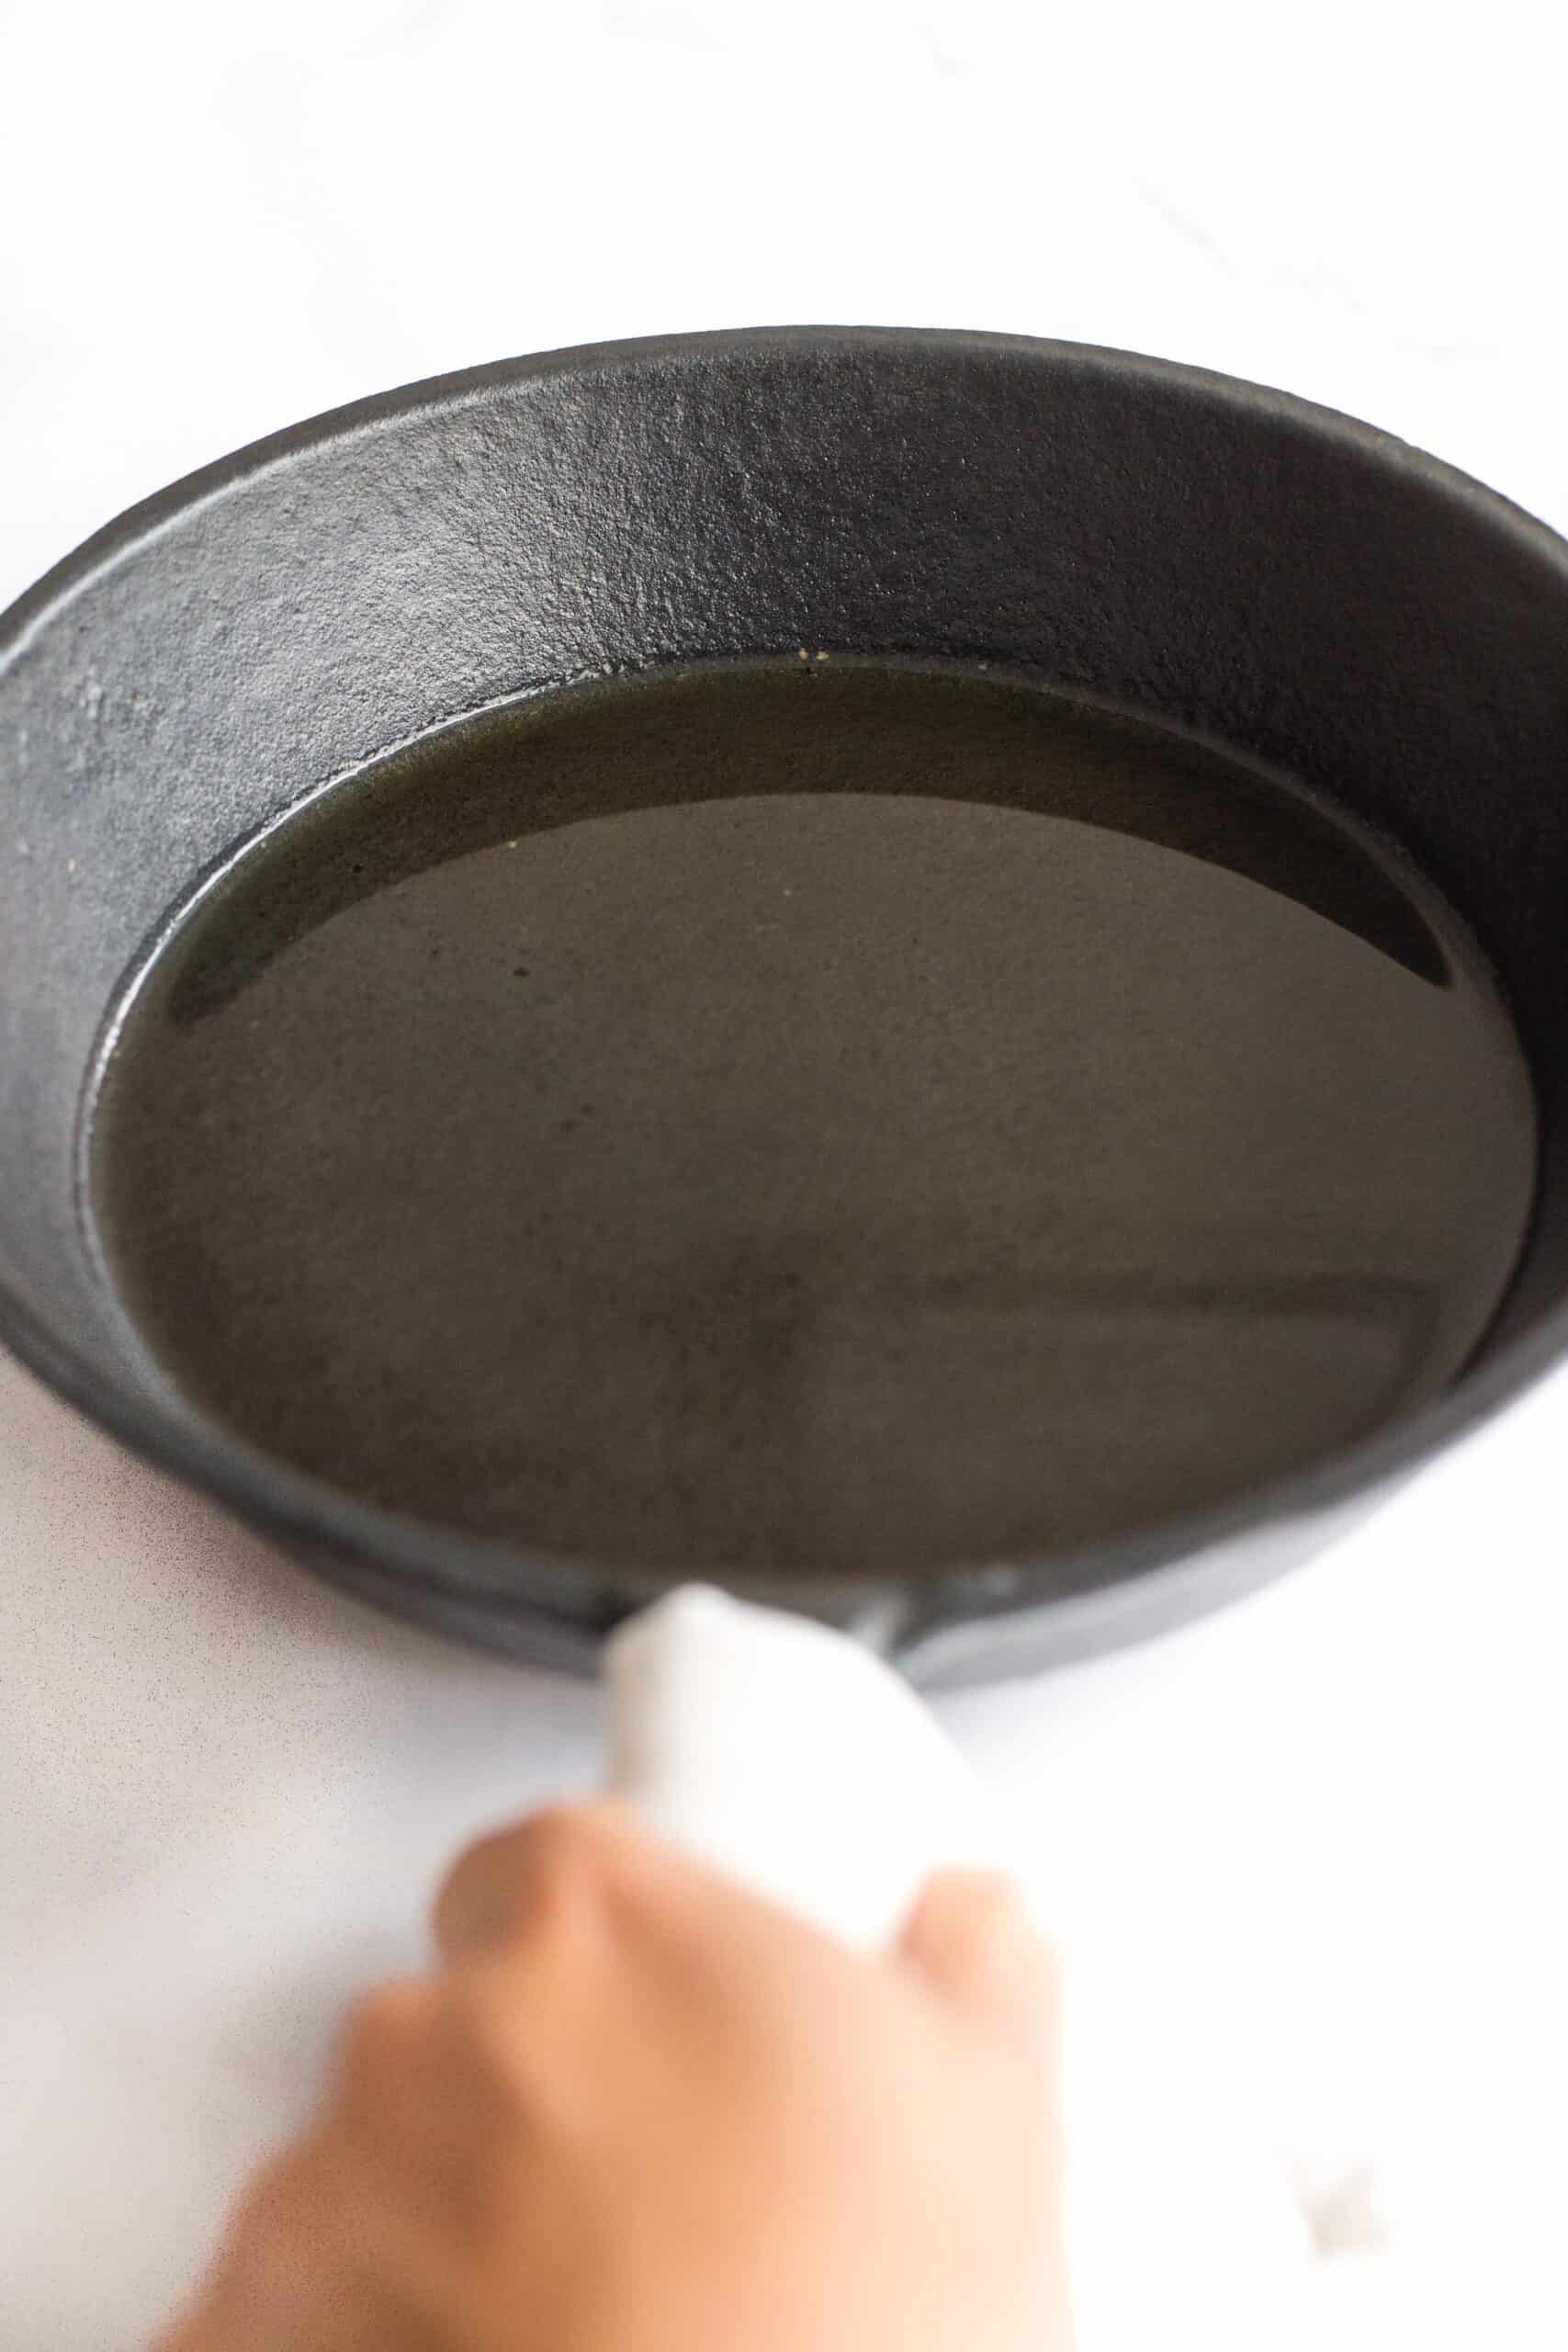 Holding a cast iron skillet with oil.